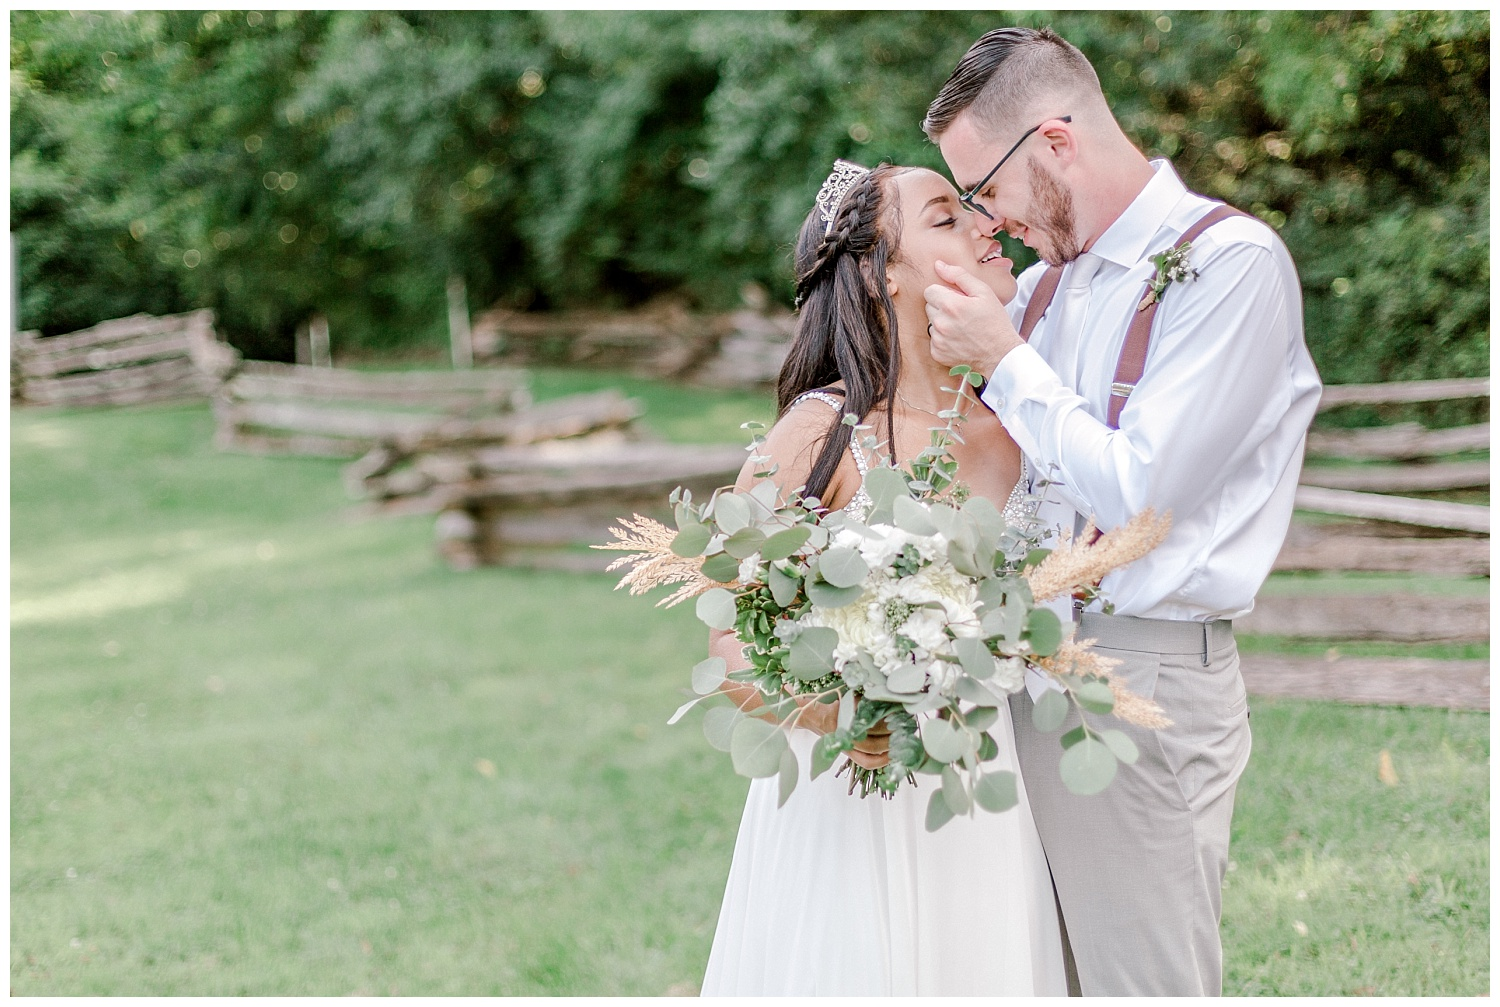 Olive green and white rustic barn wedding at burnside plantation in bethlehem pennsylvania by PA based destination wedding and lifestyle photographer Lytle photography (54).jpg